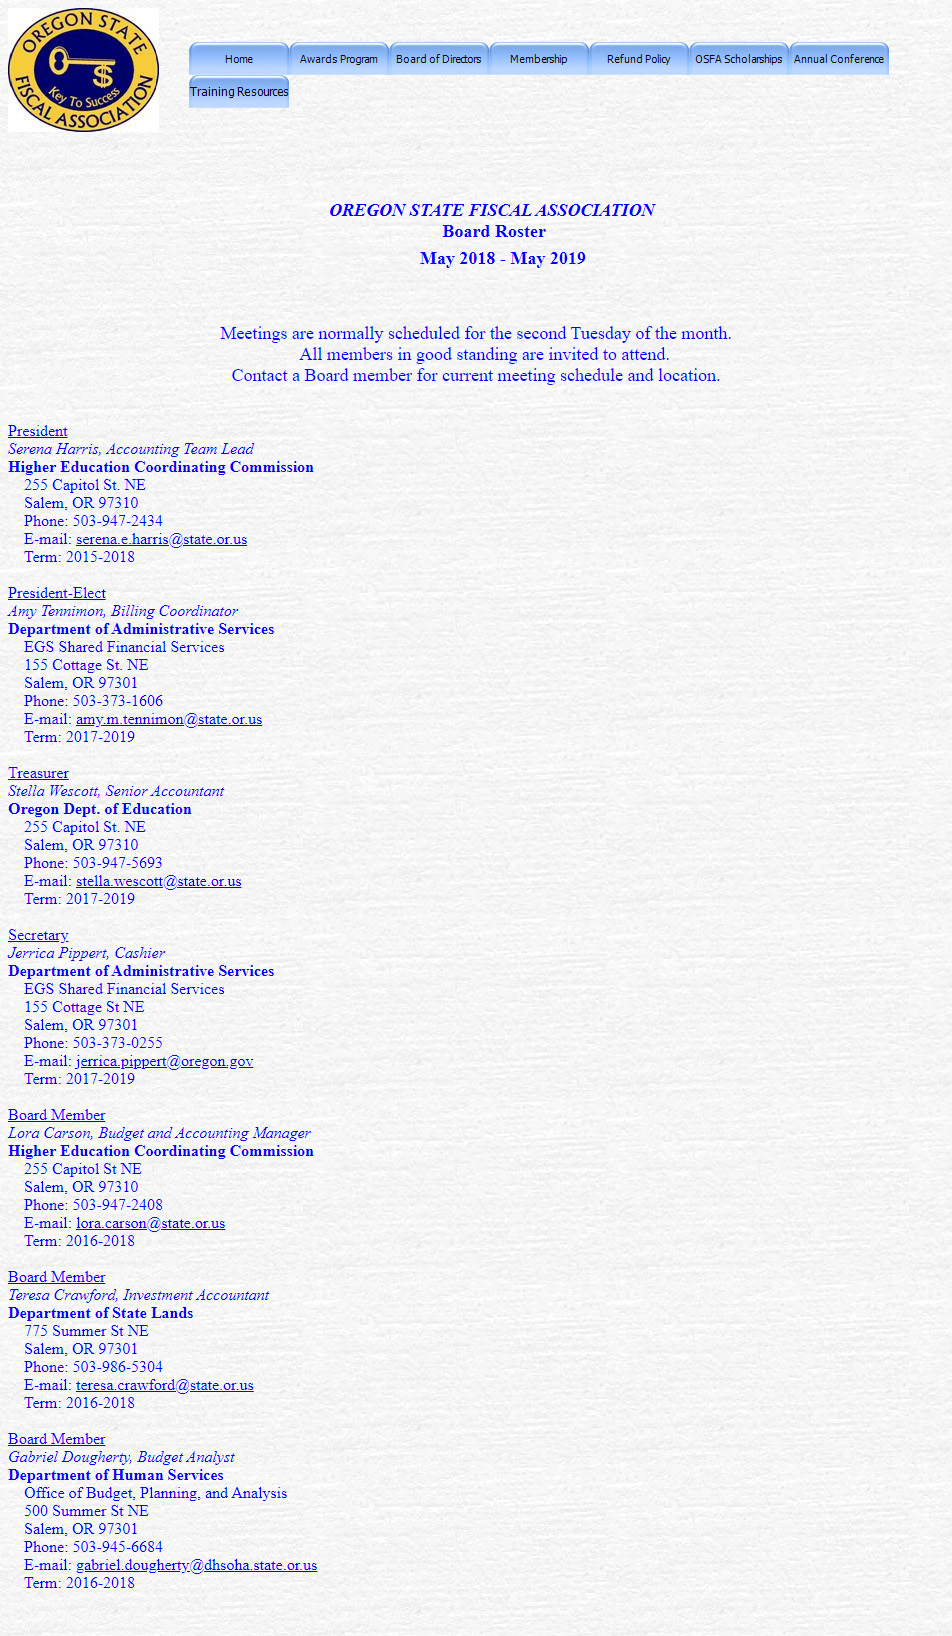 Old Board of Directors Page for Oregon State Fiscal Association